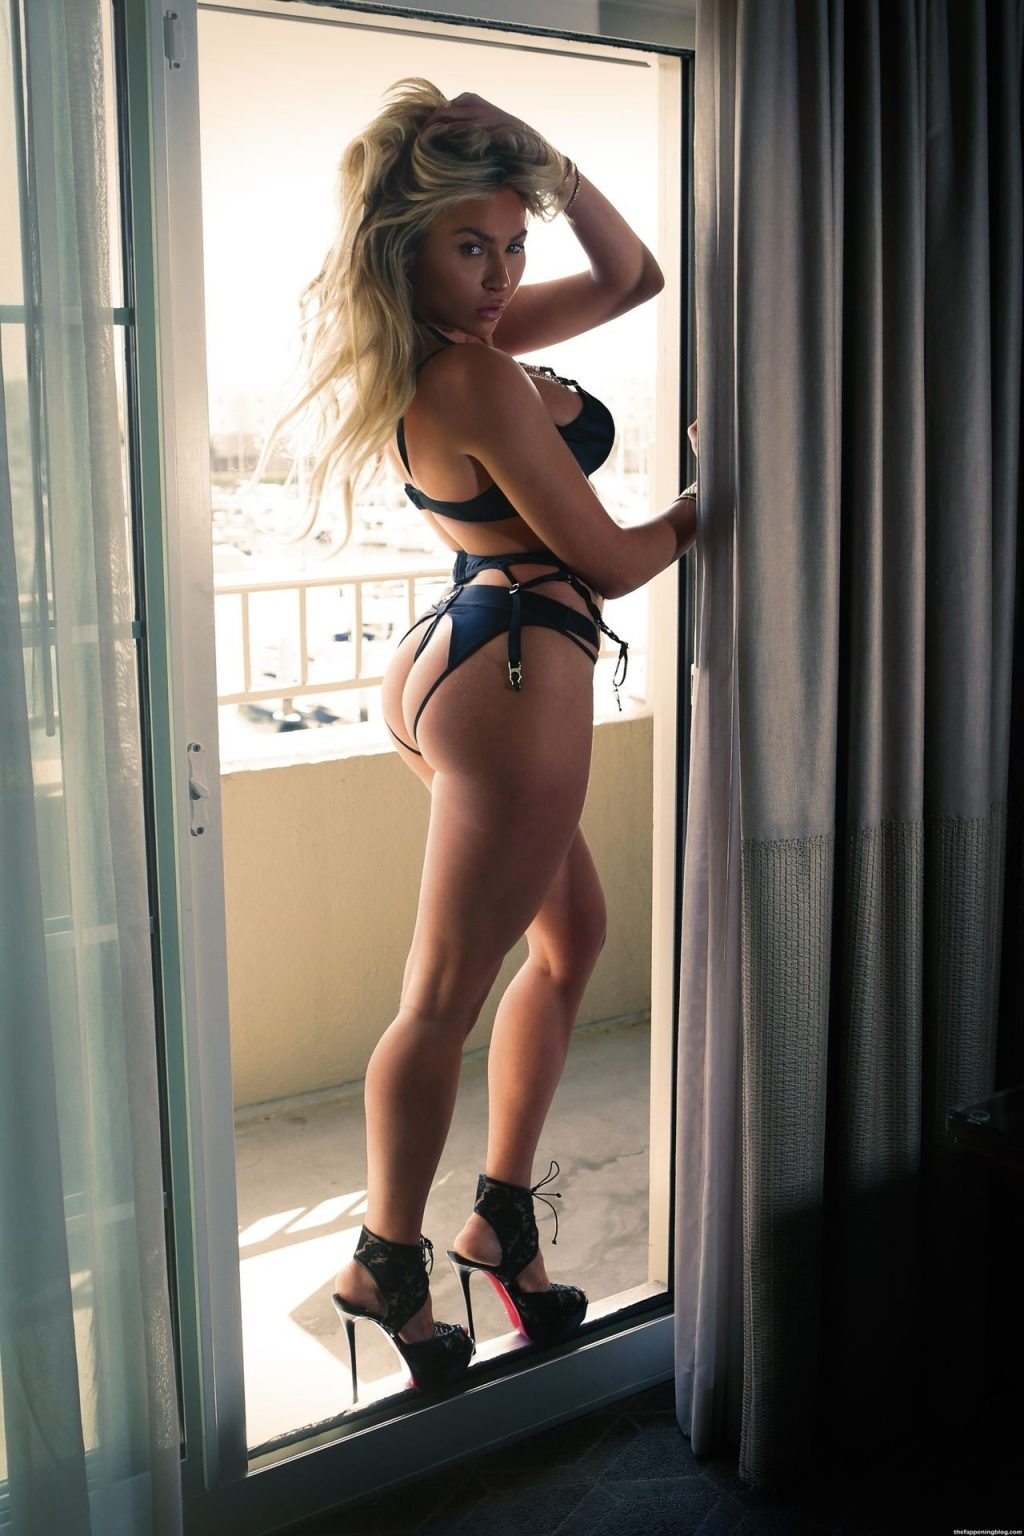 Khloe Terae is a Sultry Babe in Honey Birdette Lingerie (44 Photos)